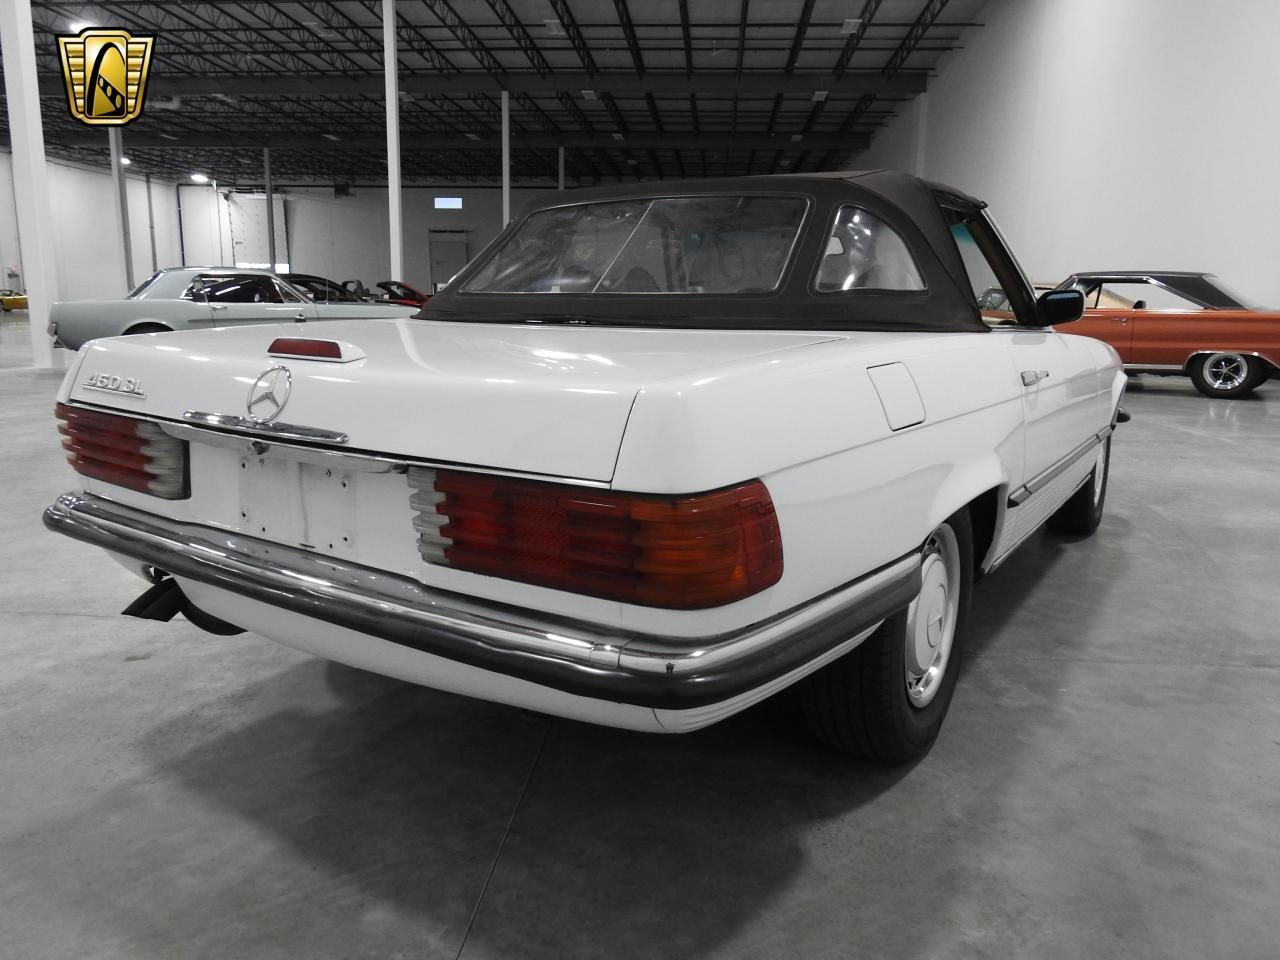 Large Picture of 1973 Mercedes-Benz 450SL located in Kenosha Wisconsin - $13,595.00 - KDYN